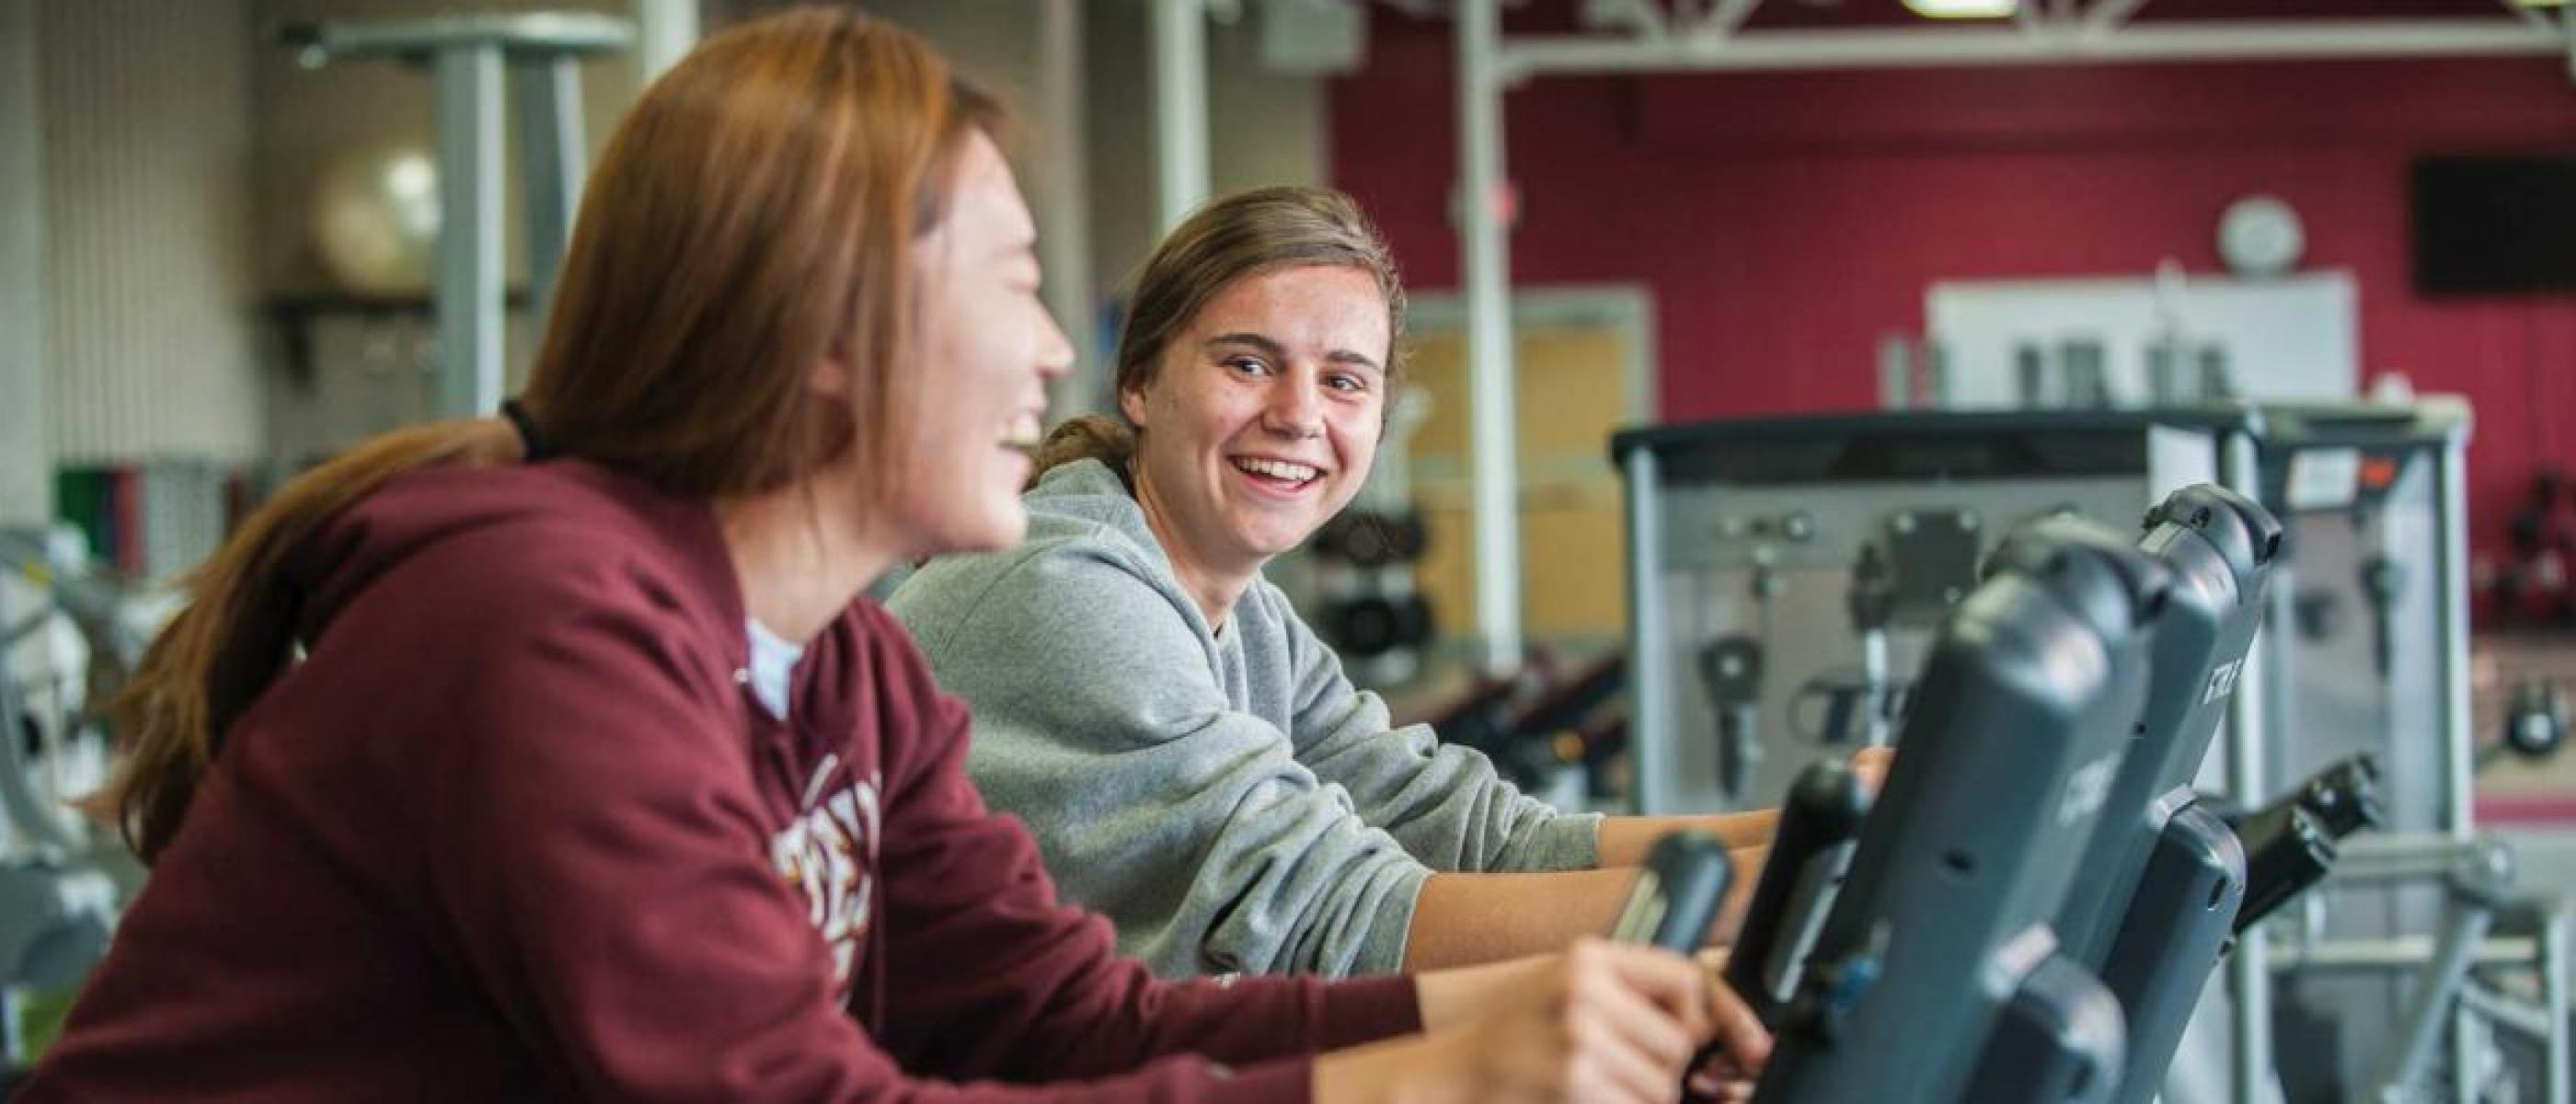 Two students working out in fitness center